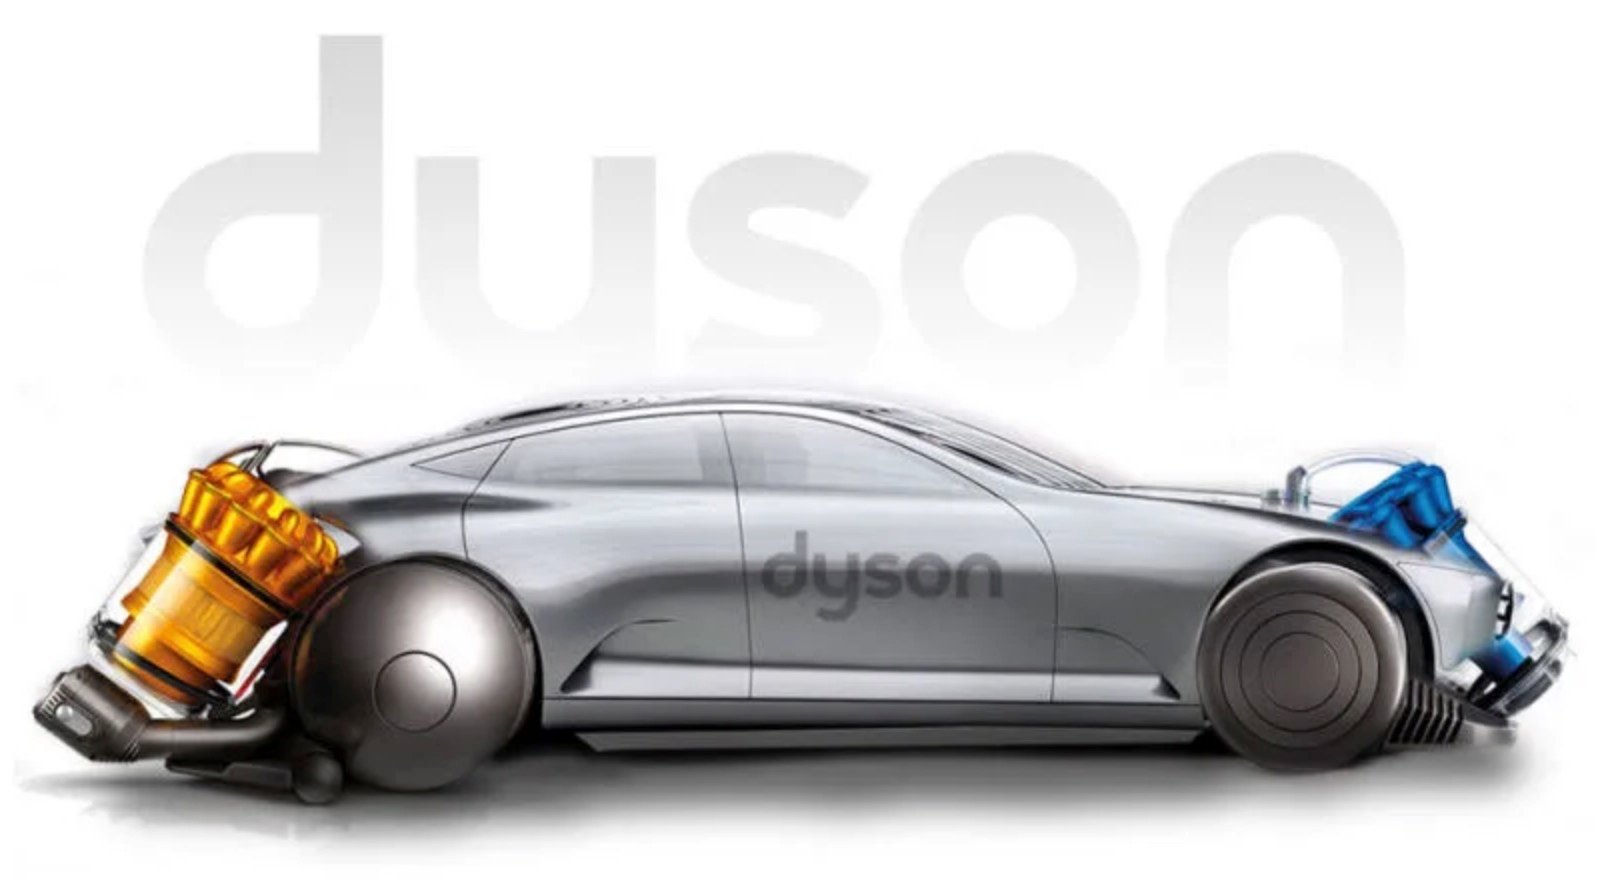 dyson evcar 364x205 - Dysons has abandoned its plans for an electric vehicle